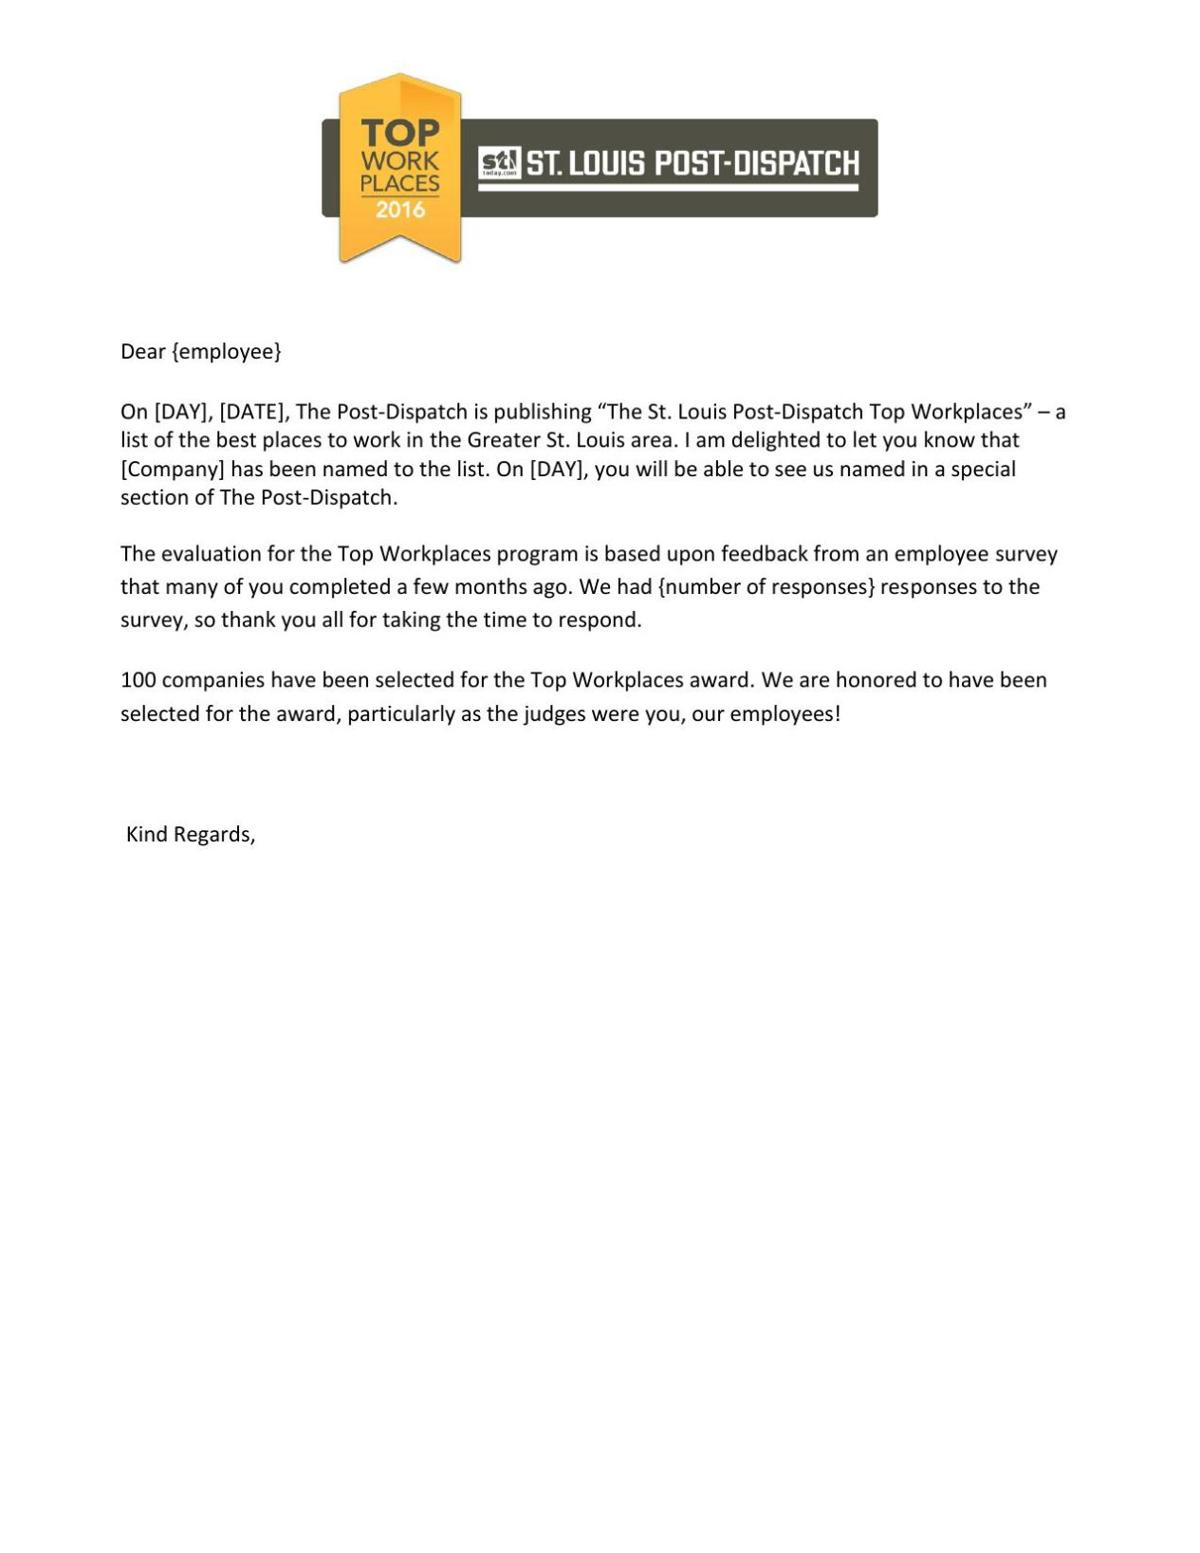 internal announcement letter template top workplaces